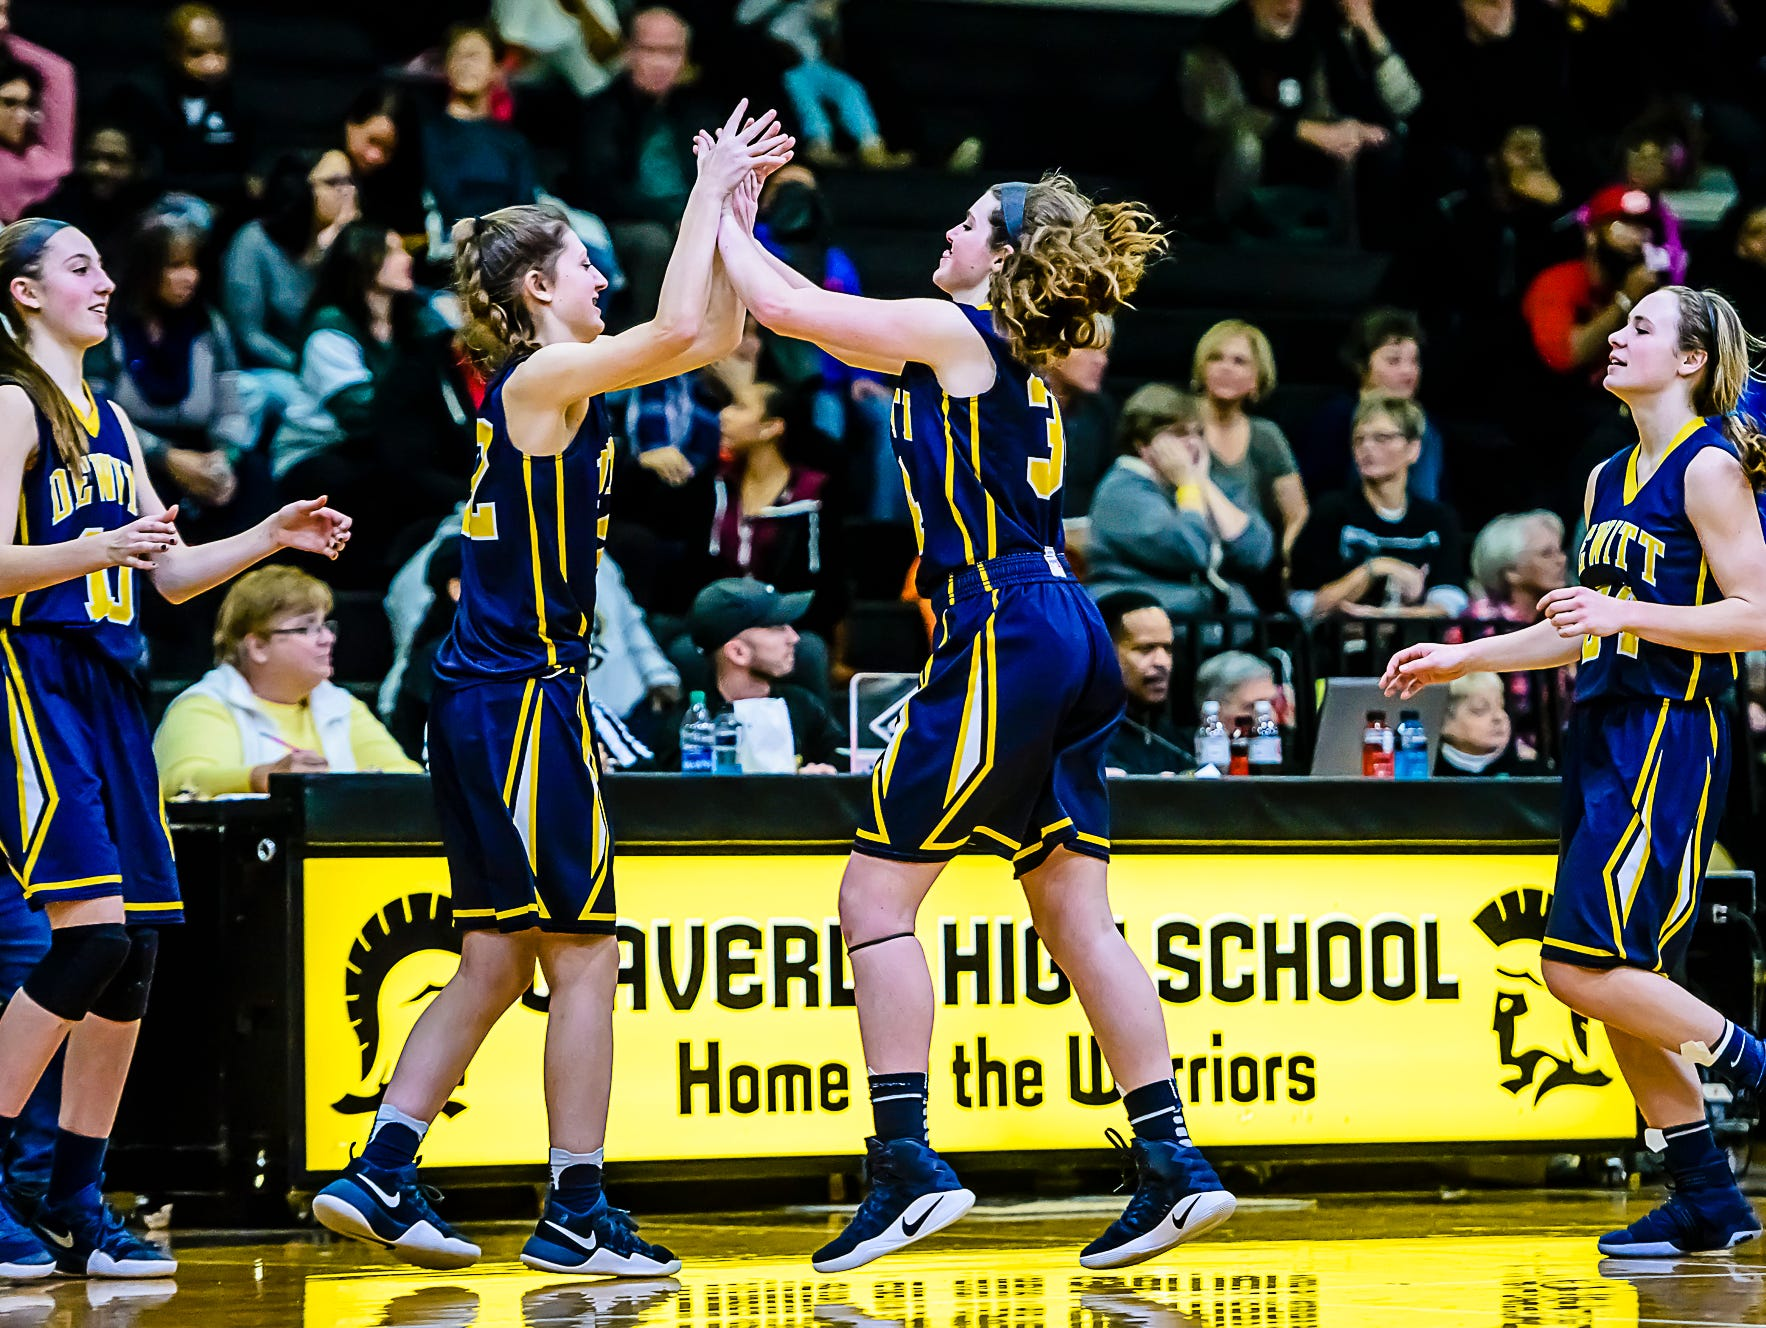 Grace George ,second from right, high-fuves teammate Piper Phillpis ,second from left, after their win over Waverly Friday February 10, 2017 in Delta Township. KEVIN W. FOWLER PHOTO